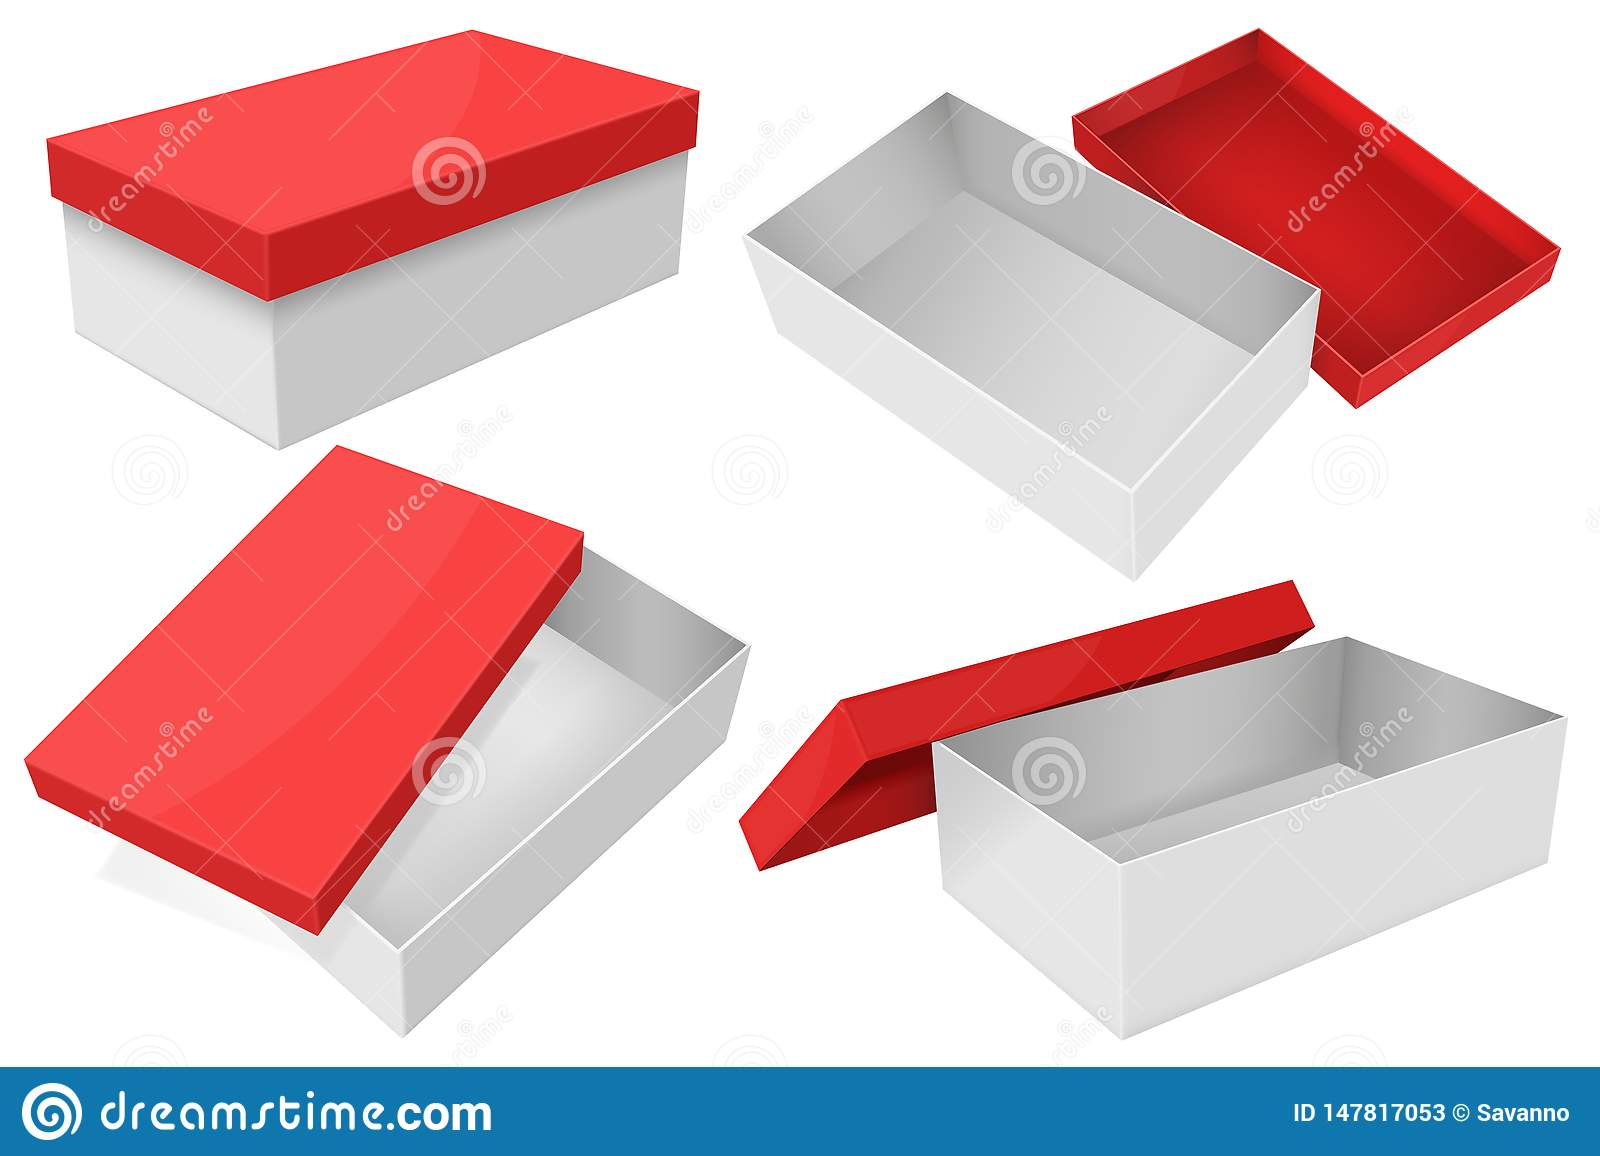 White Box With Red Lid Set Of Gift Boxes Stock Vector